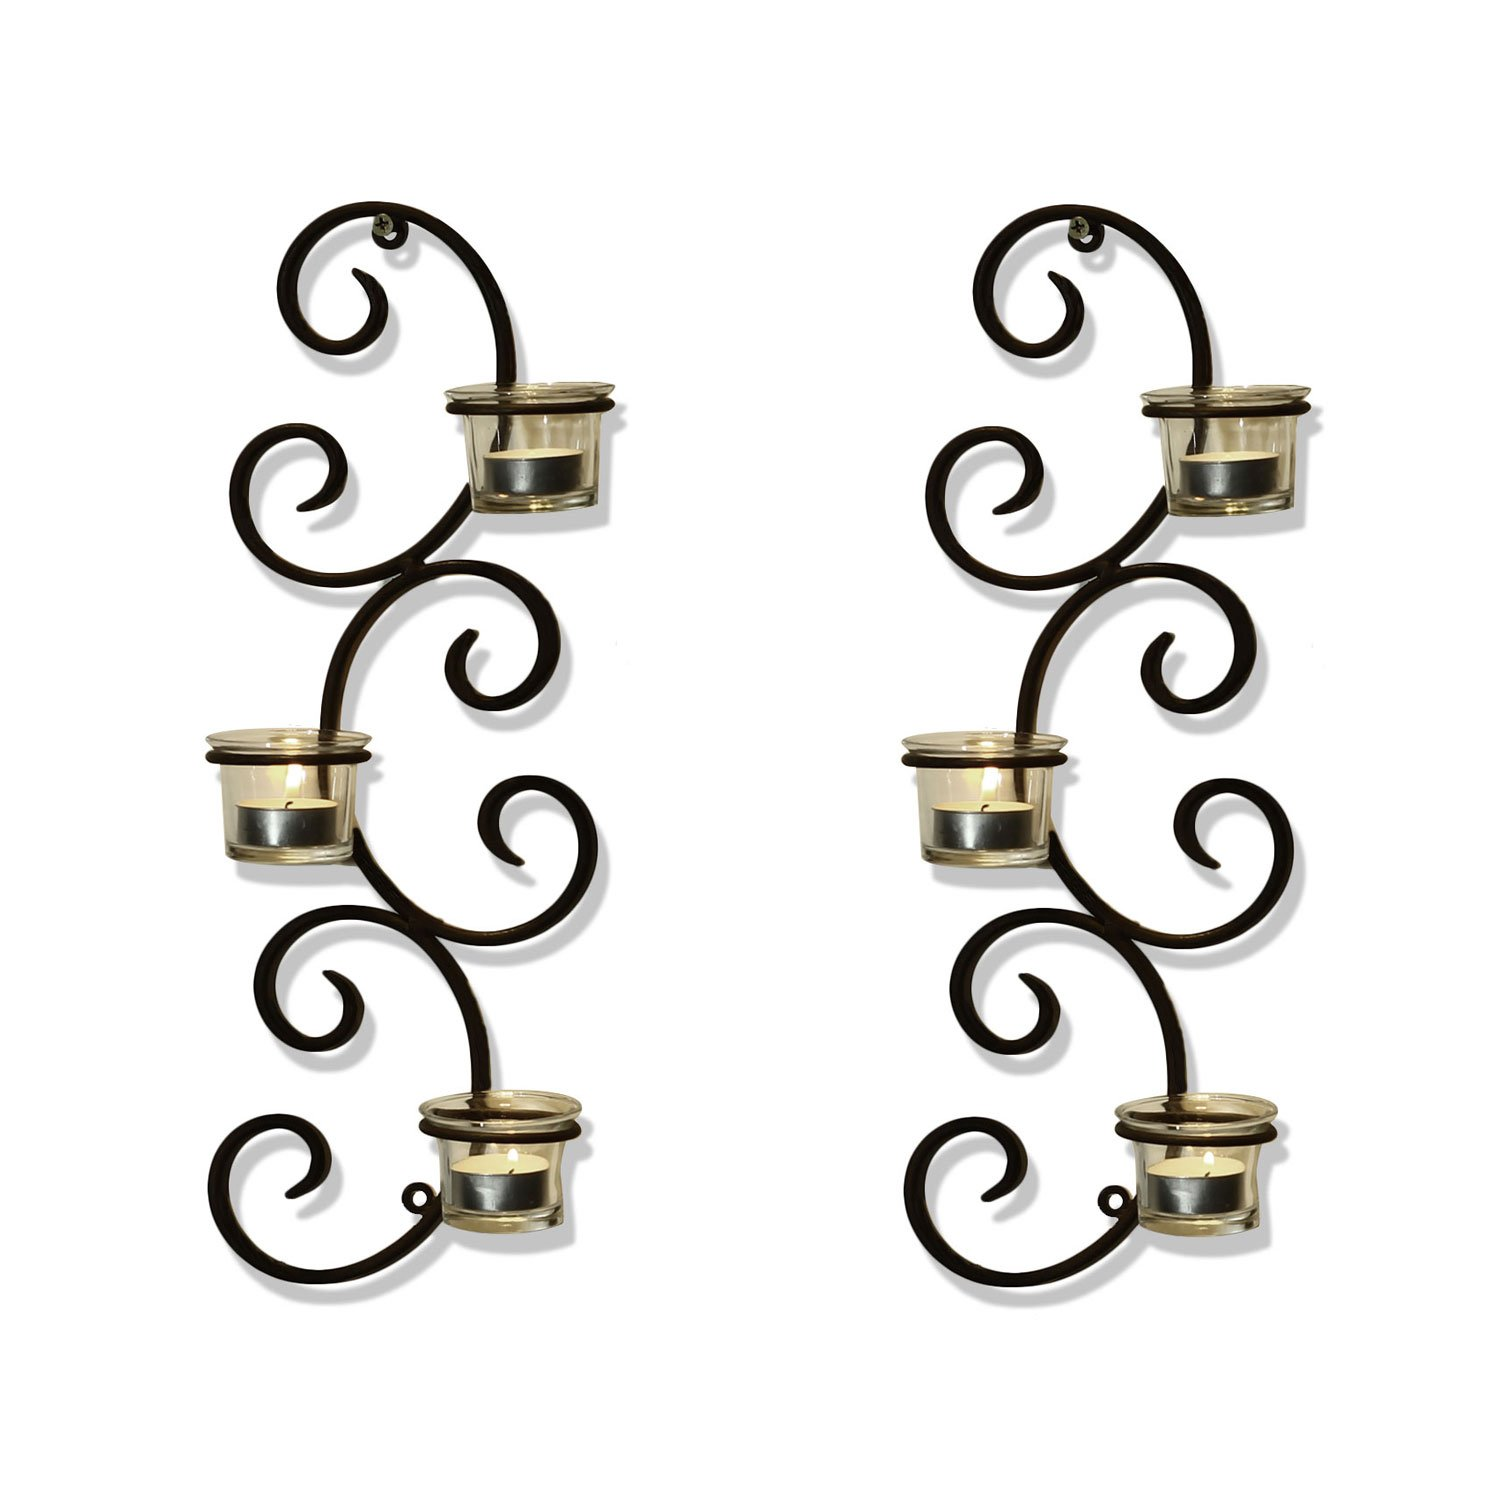 Adeco HD0020 Brown Iron Vertical Wall Hanging Accents Candle Holder Sconce, Auspicious Clouds Scrolls, Holds 3 Pillar Candle Each (Set of Two) Black with Antique Finish